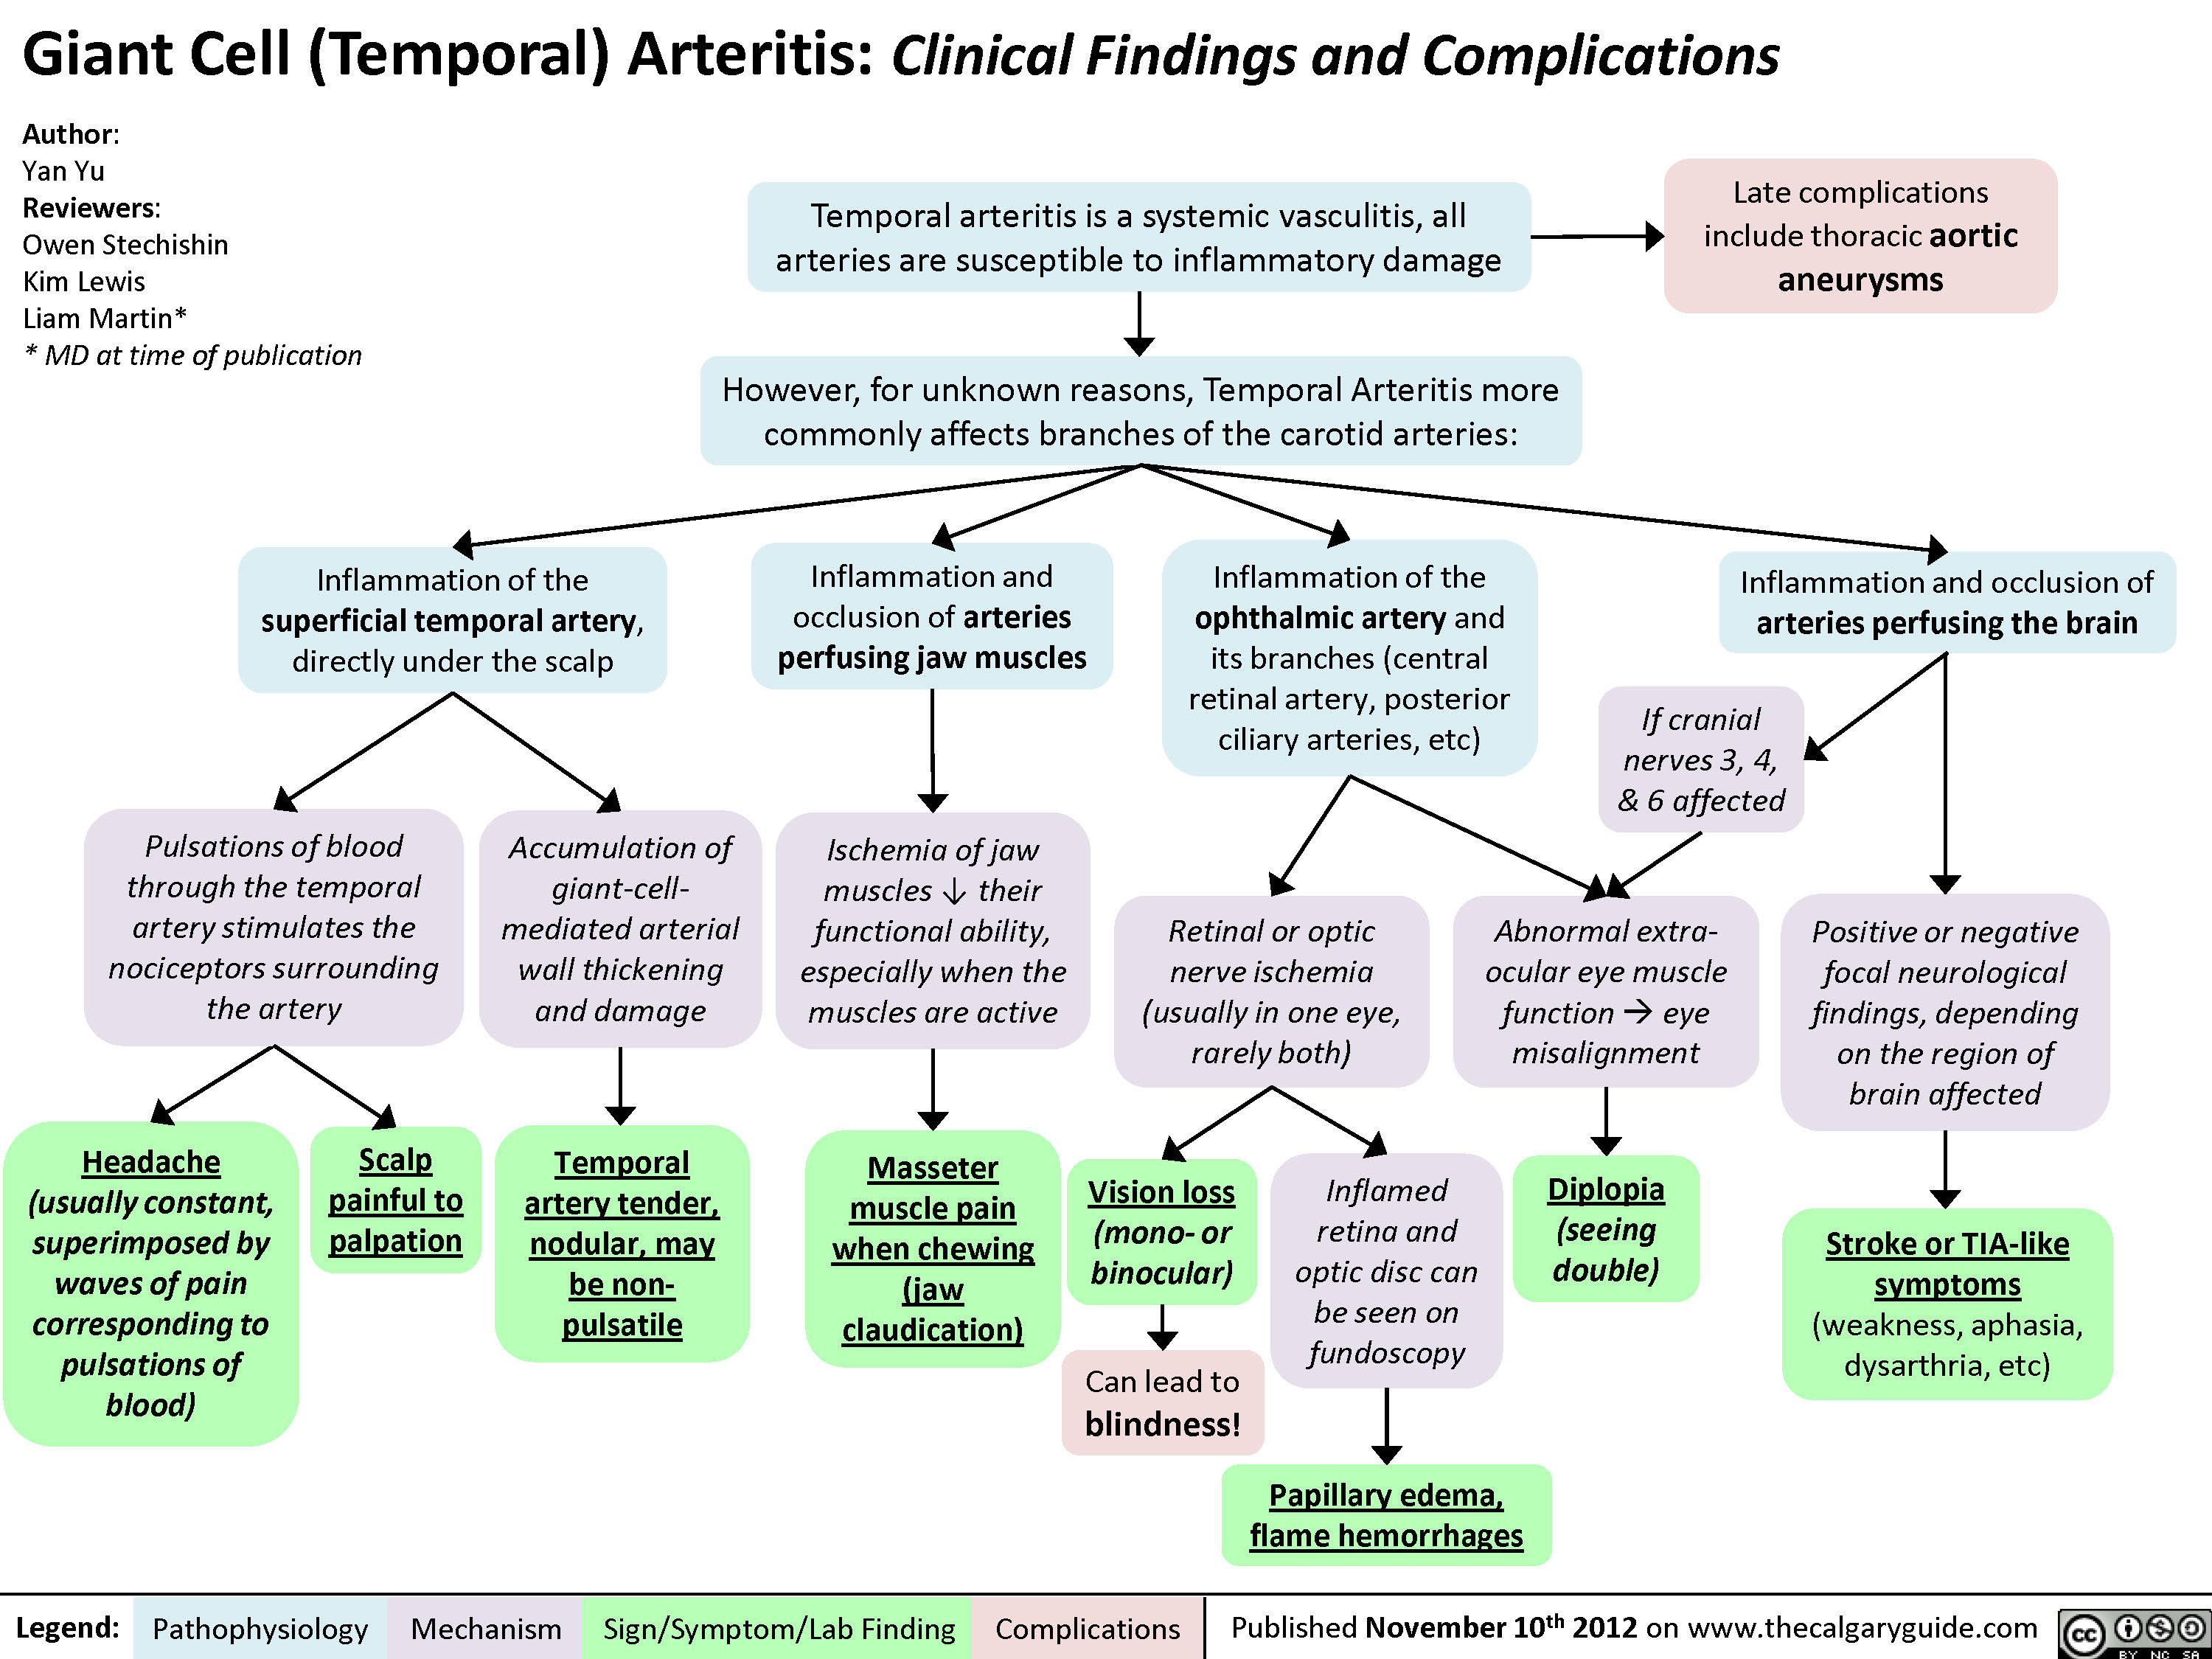 Giant Cell (Temporal) Arteritis - Clinical findings and Complications